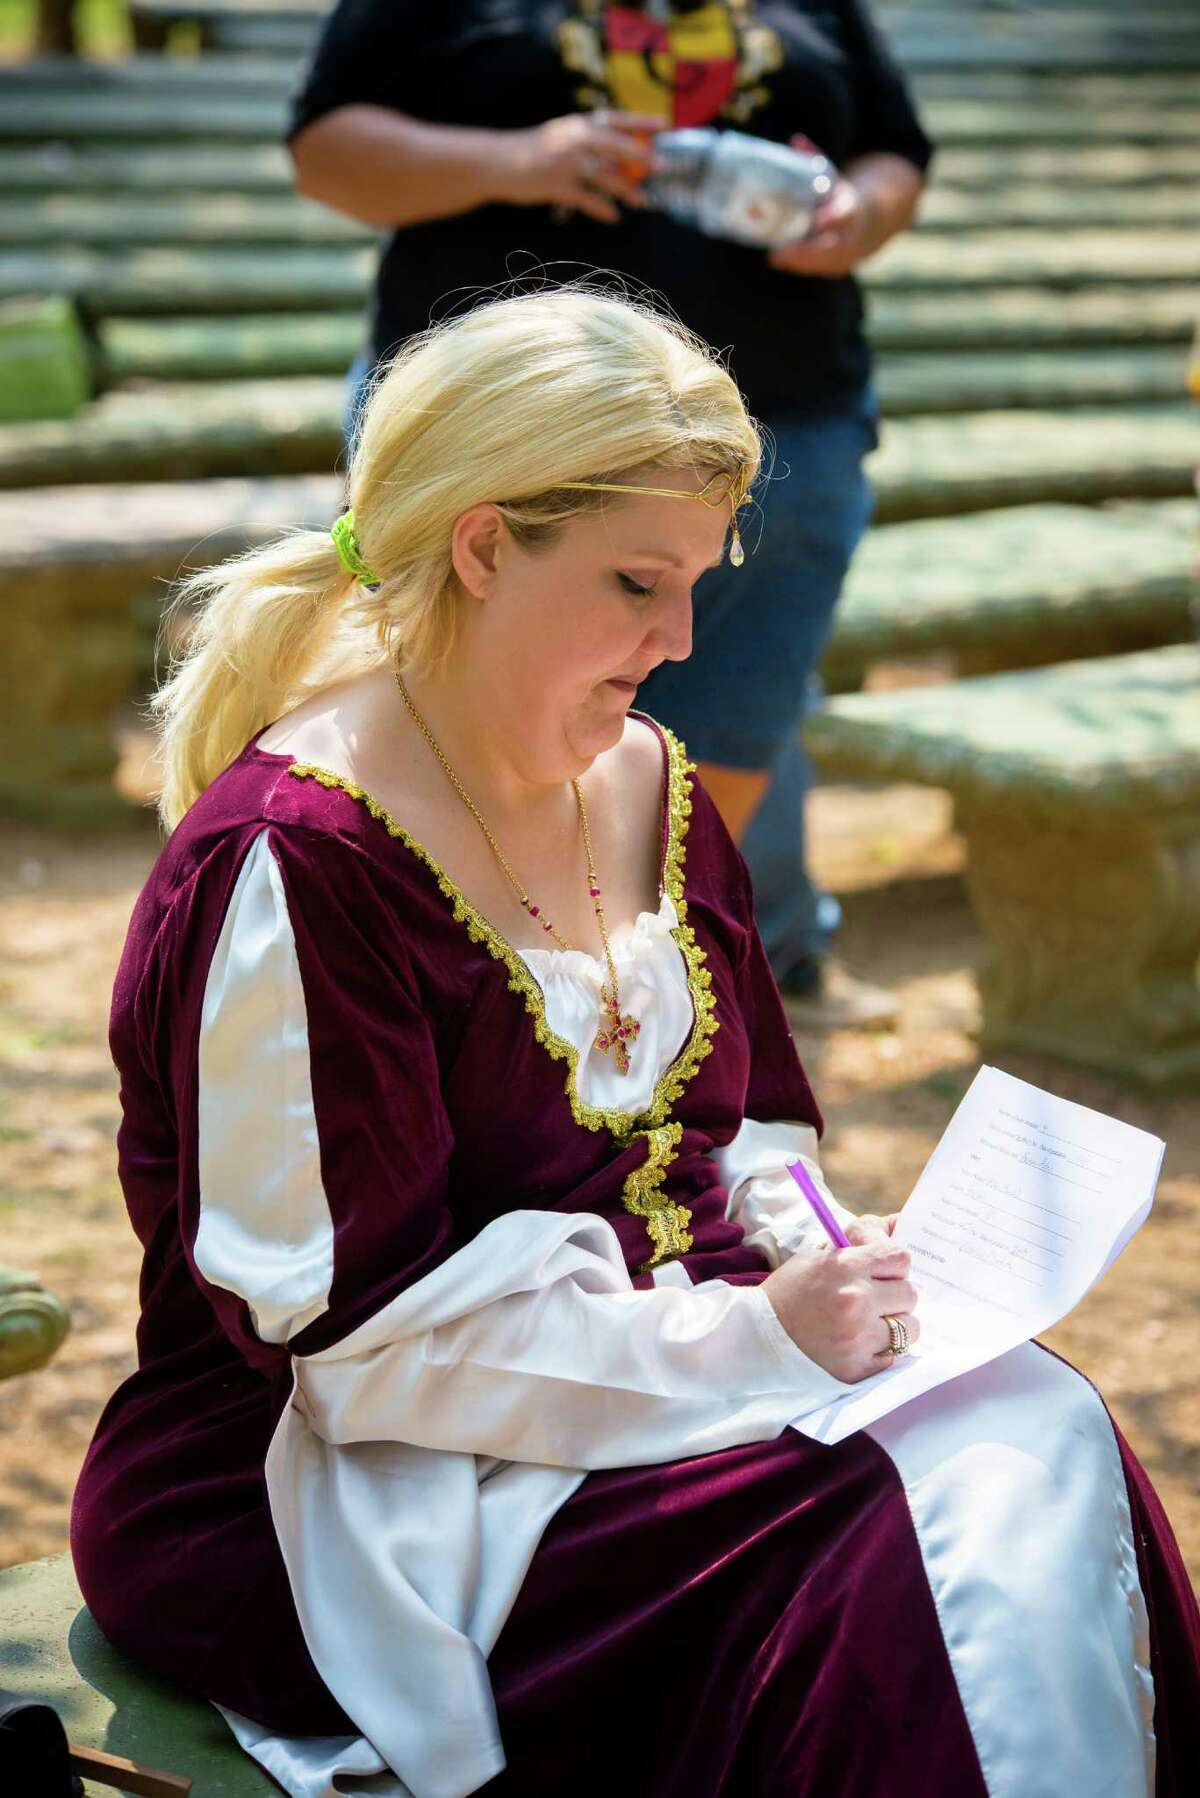 """The Texas Renaissance Festival is looking for a few good wenches and hawkers to man their upcoming 40th season up in Todd Mission and this coming weekend they are holding a """"job faire"""" for any interested parties looking to make some extra cash using the King's English."""